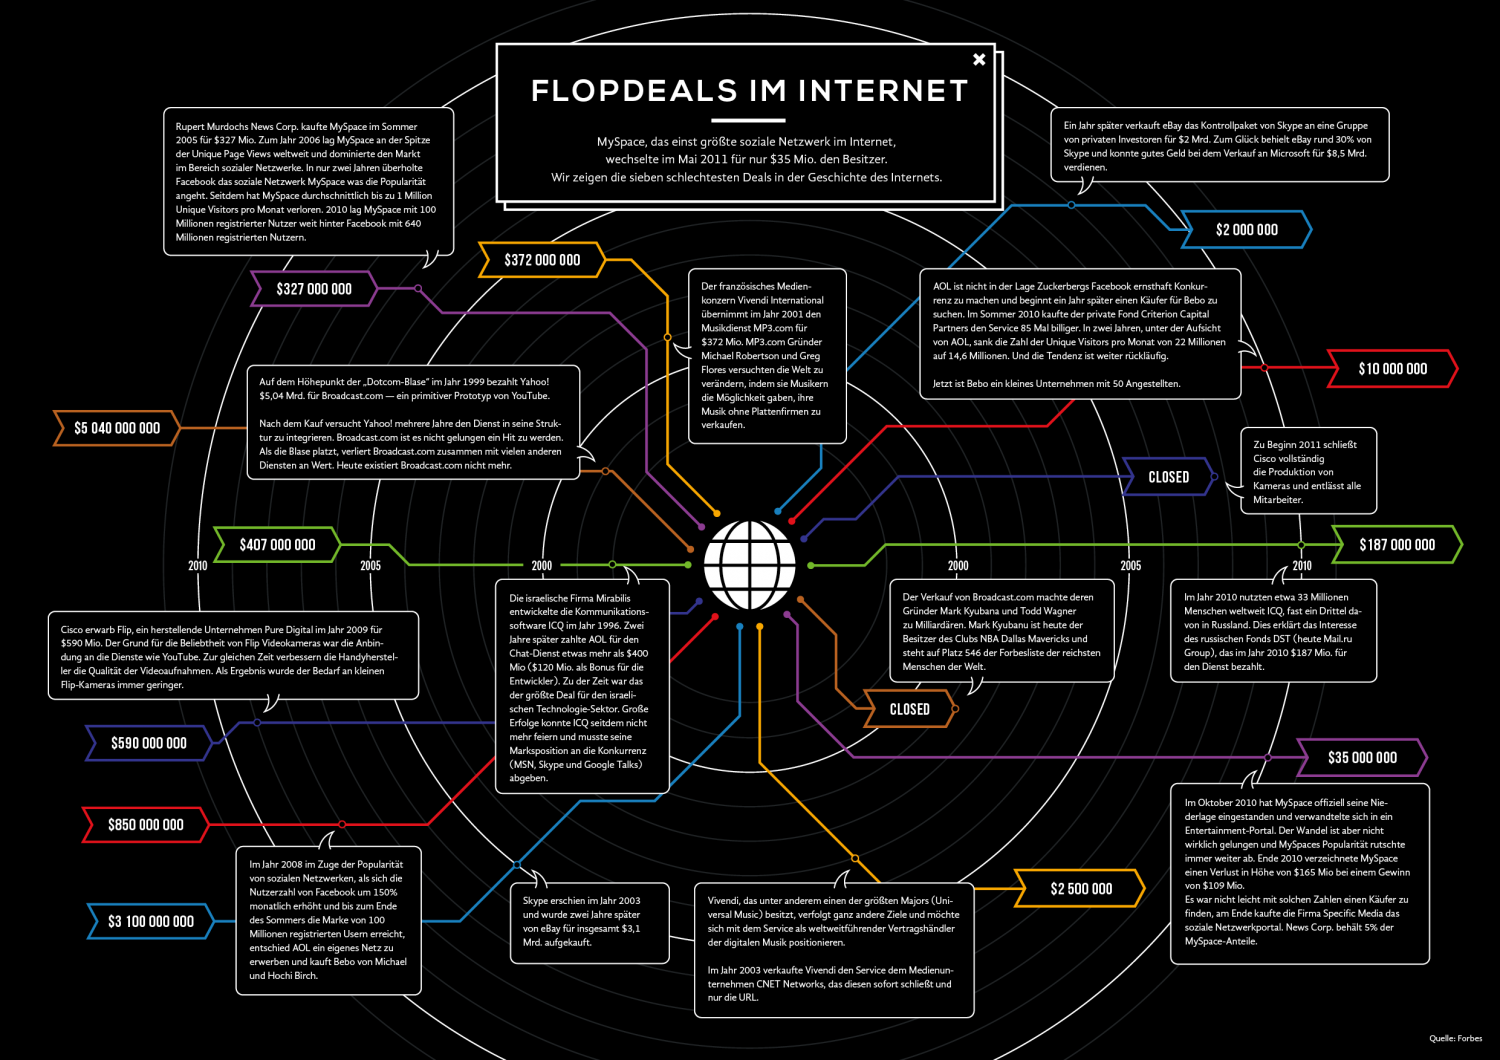 Flopdeals im Internet Infographic